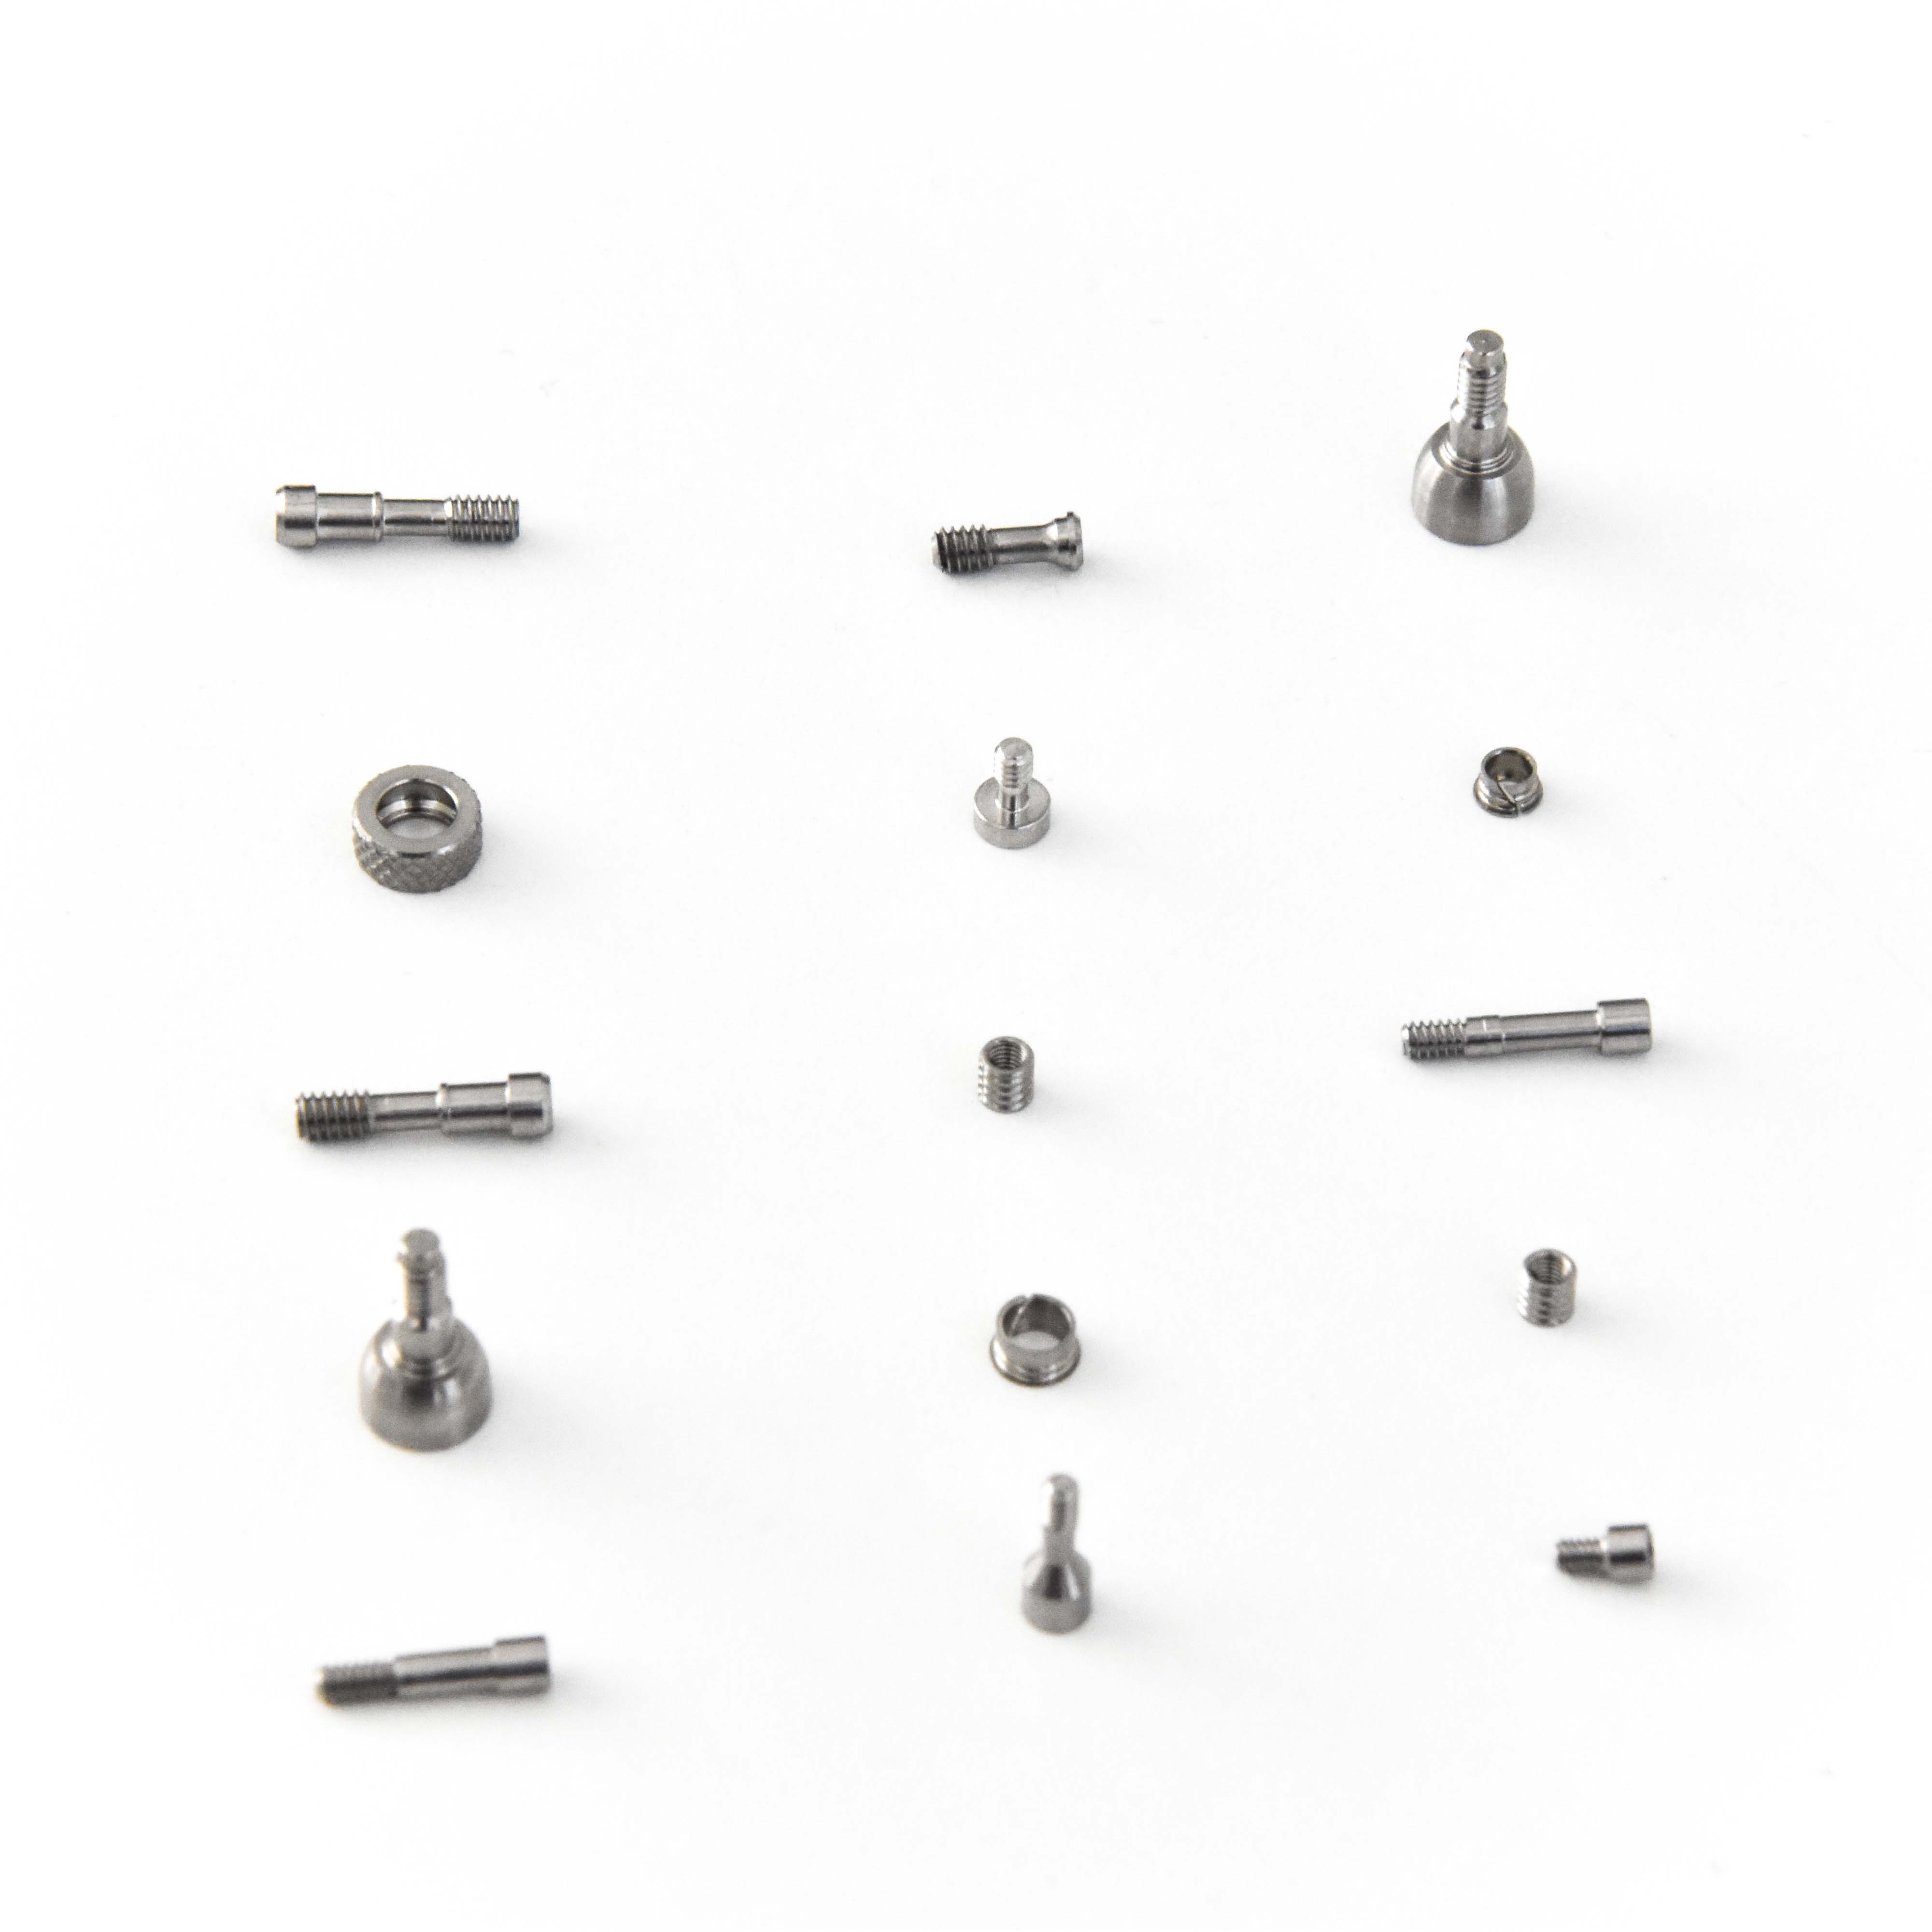 Connection, prosthetic and healing screws and threaded components